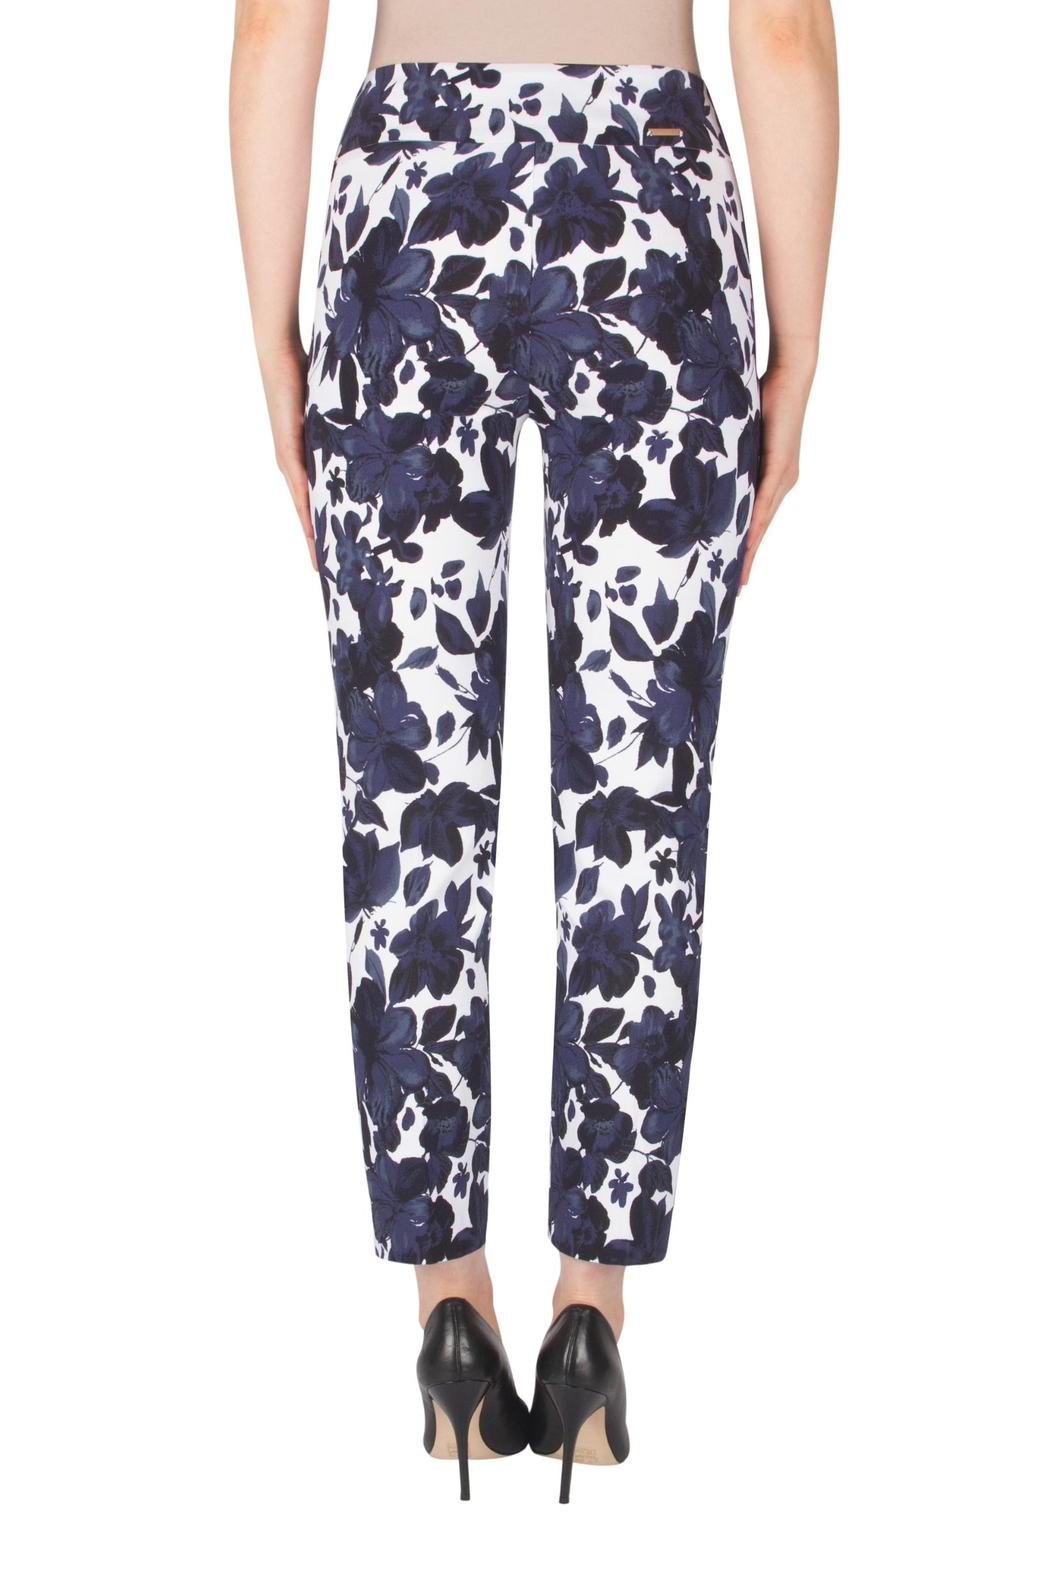 Joseph Ribkoff Fitted Floral Pant - Side Cropped Image